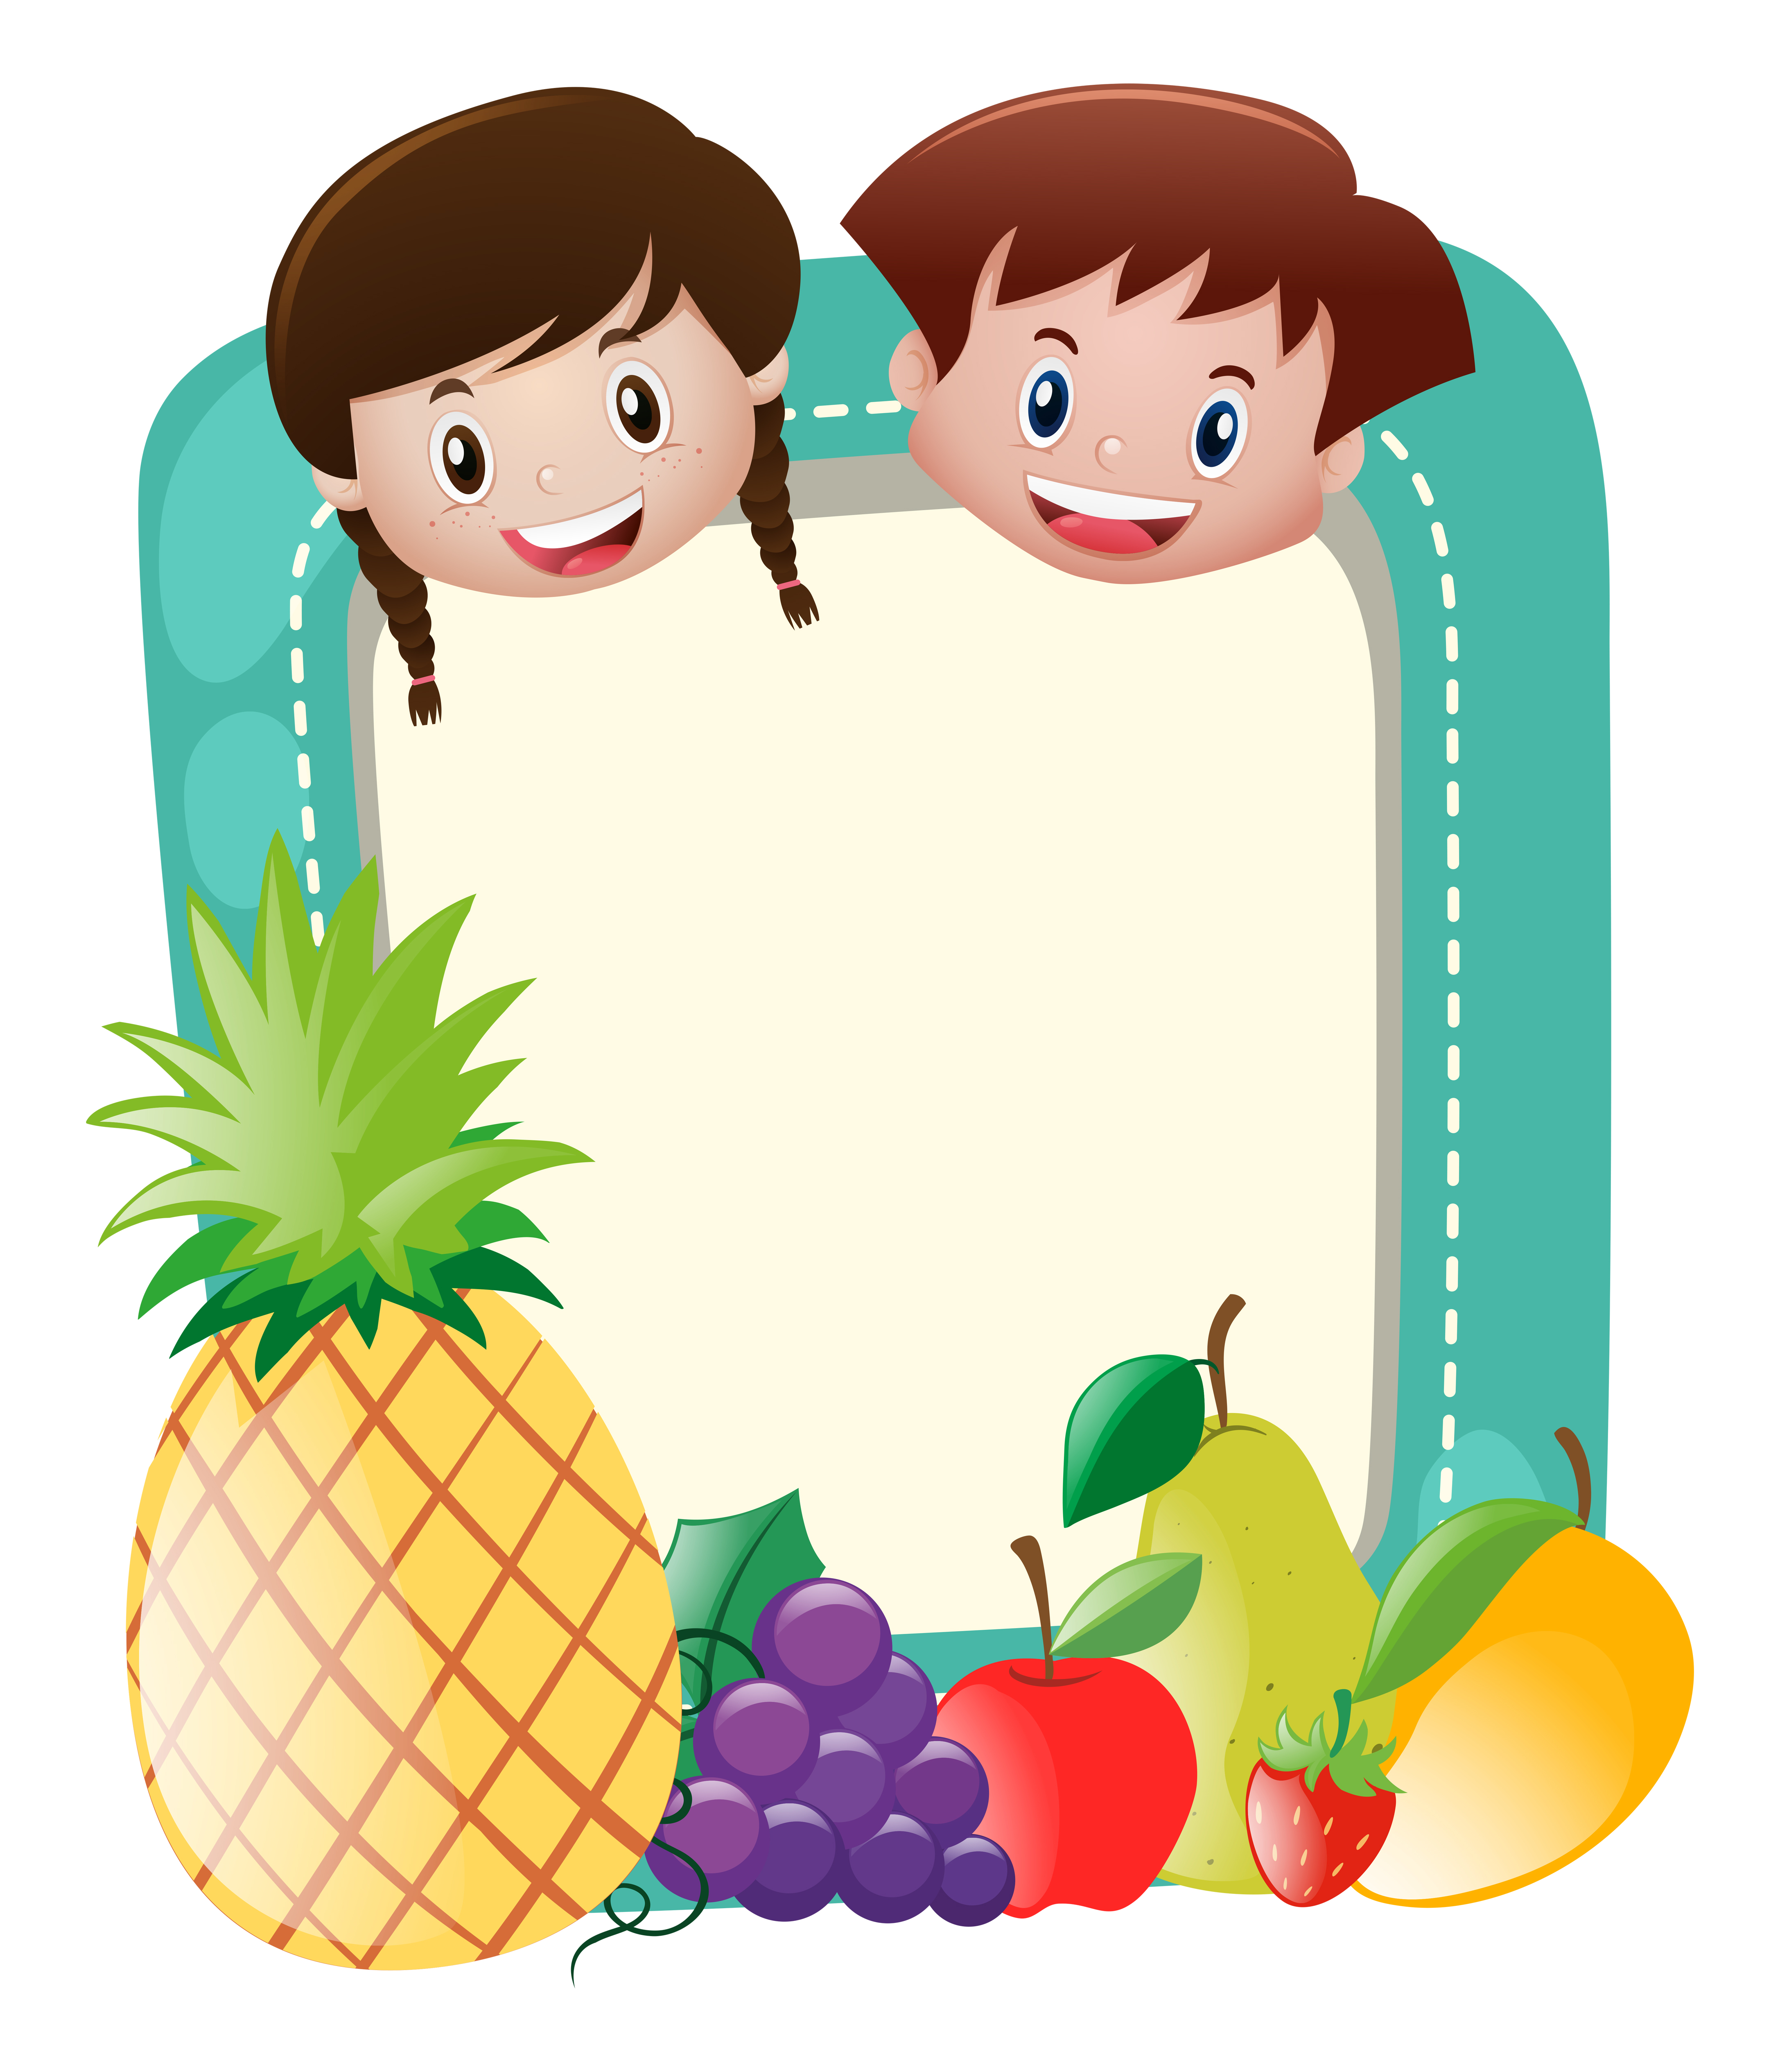 Border Template With Kids And Fruits Download Free Vectors Clipart Graphics Vector Art